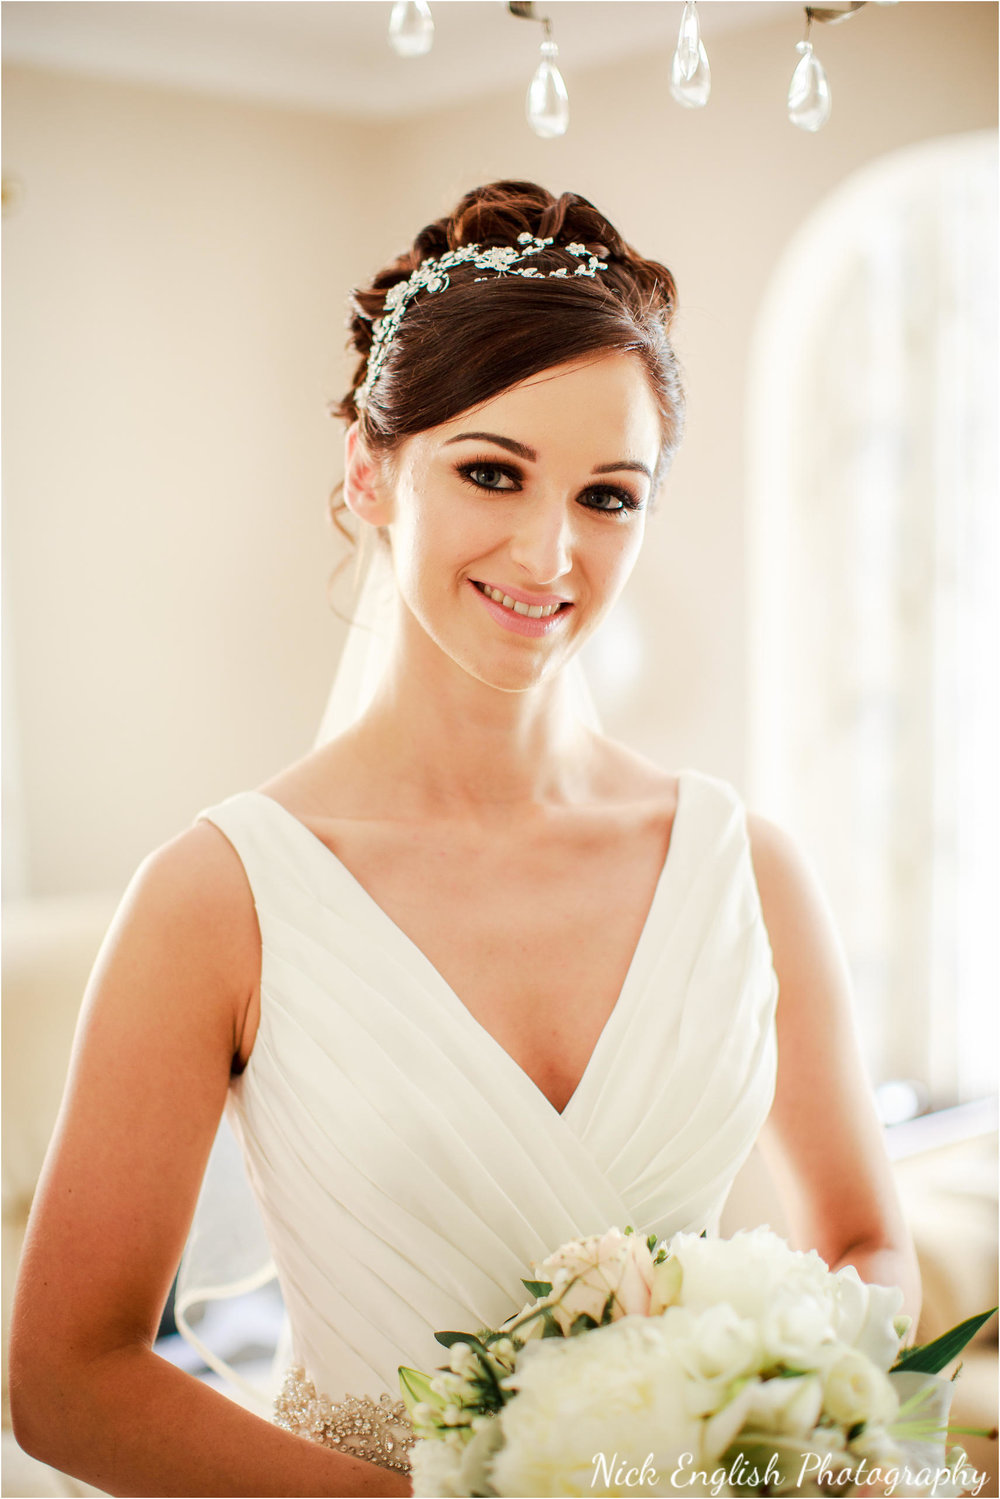 Emily David Wedding Photographs at Barton Grange Preston by Nick English Photography 34jpg.jpeg